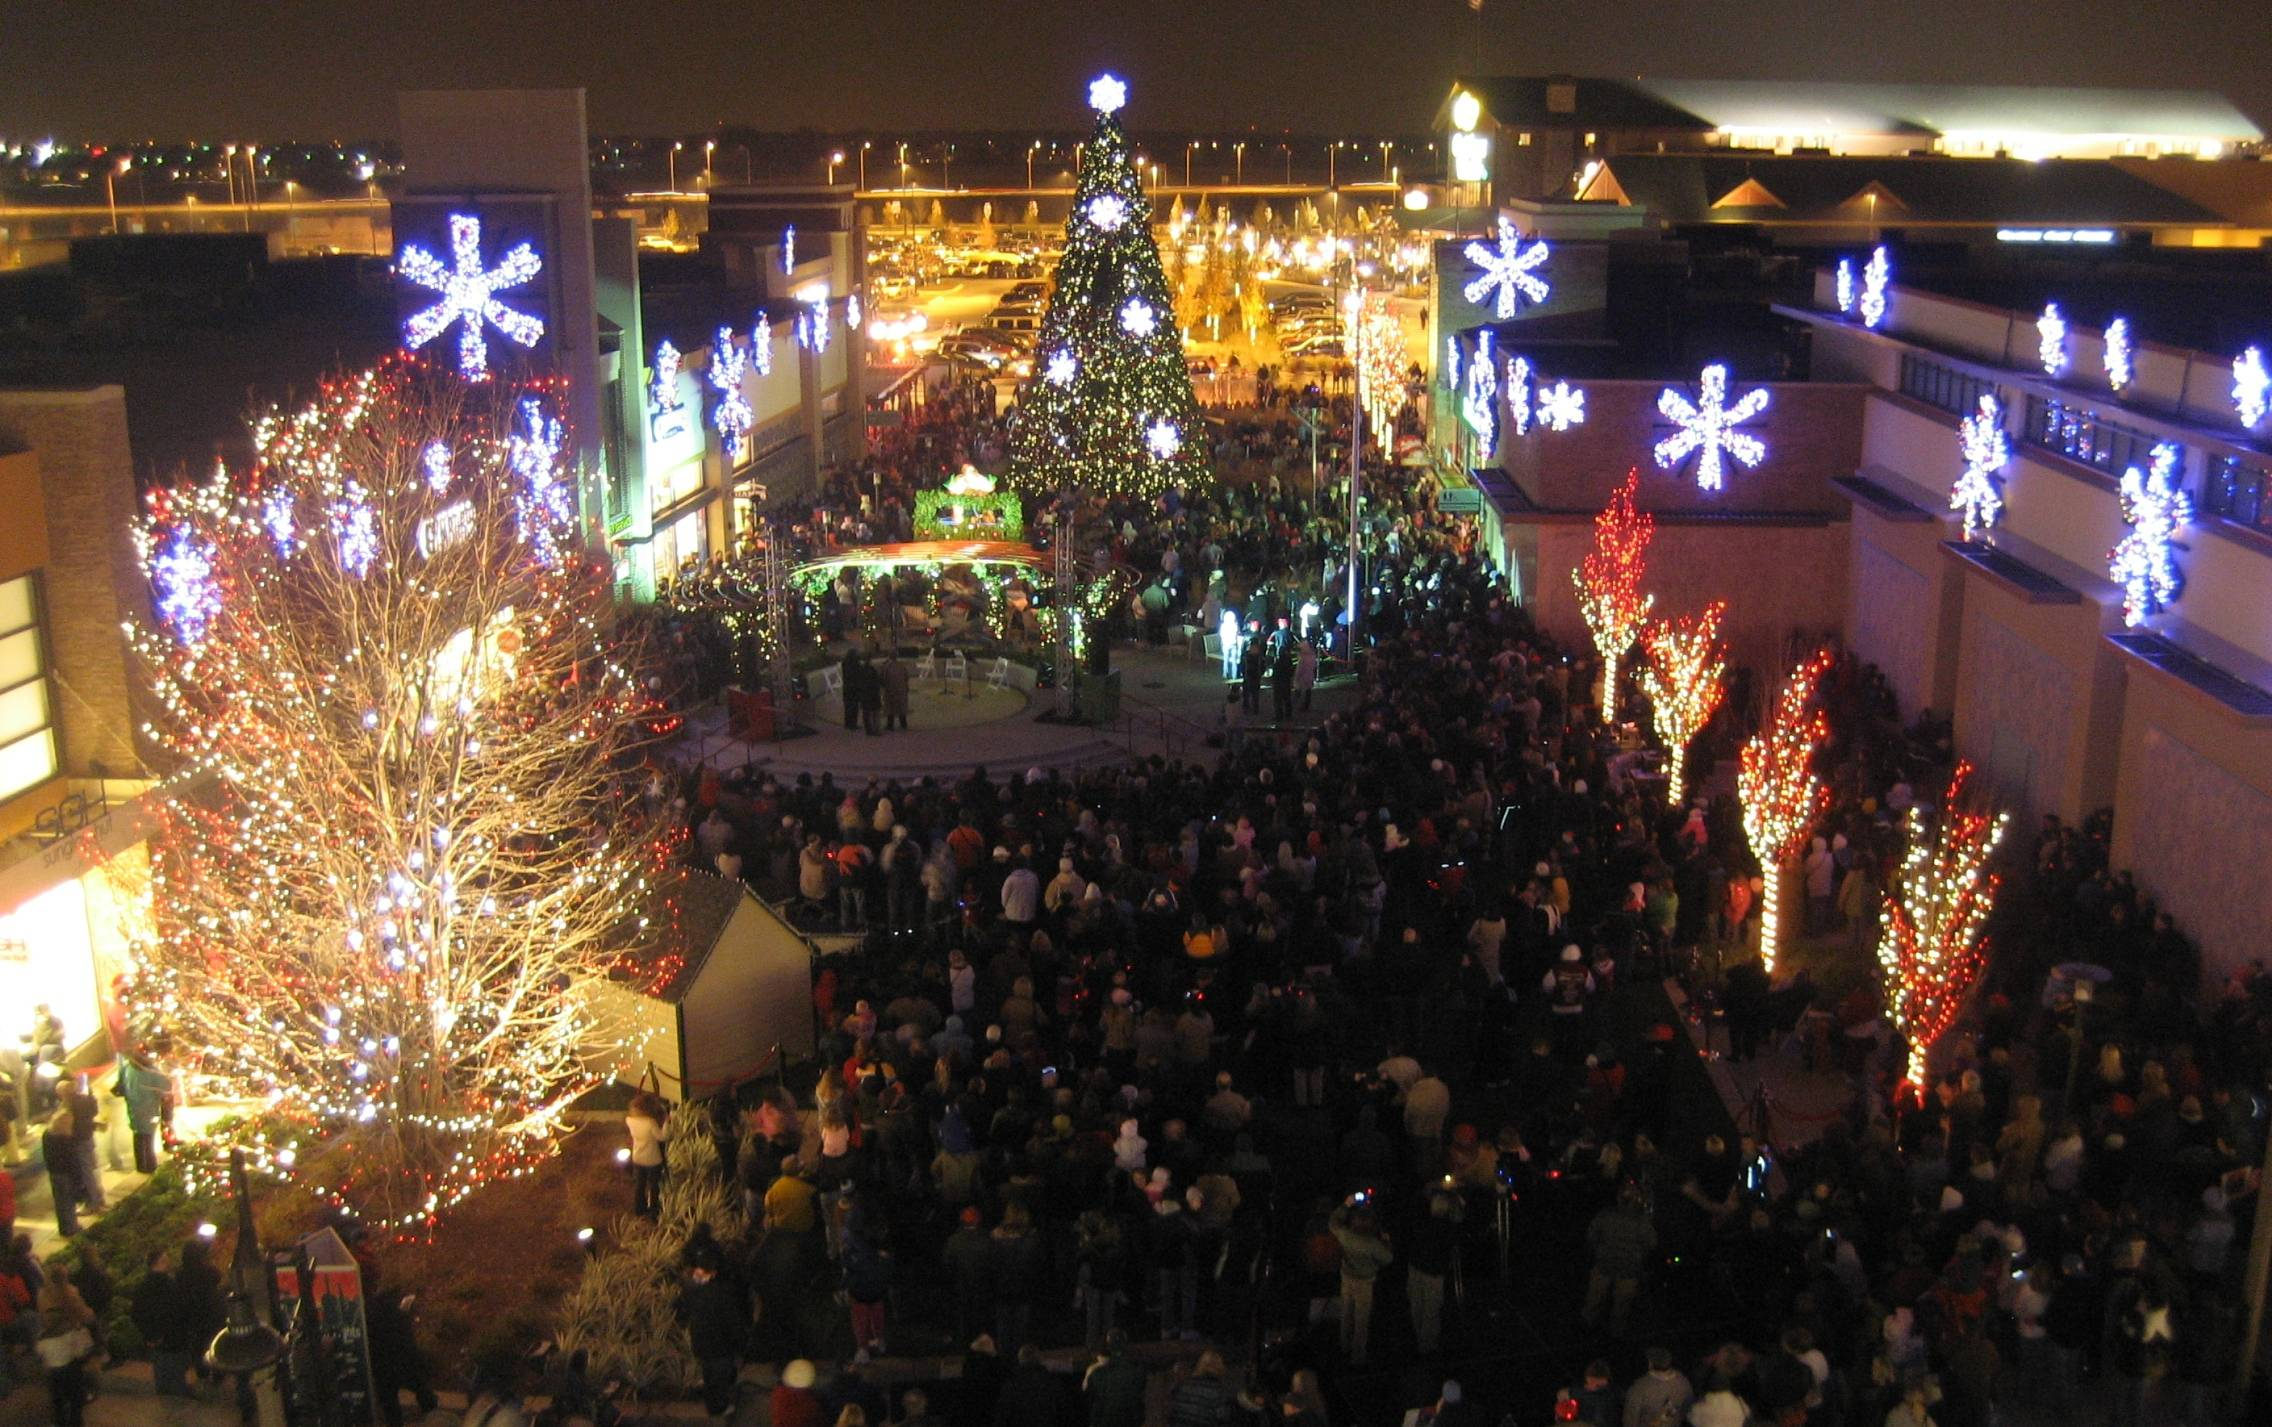 The Symphony in Lights Show at The Promenade Bolingbrook runs hourly beginning at dusk from Nov. 10-Dec. 31.